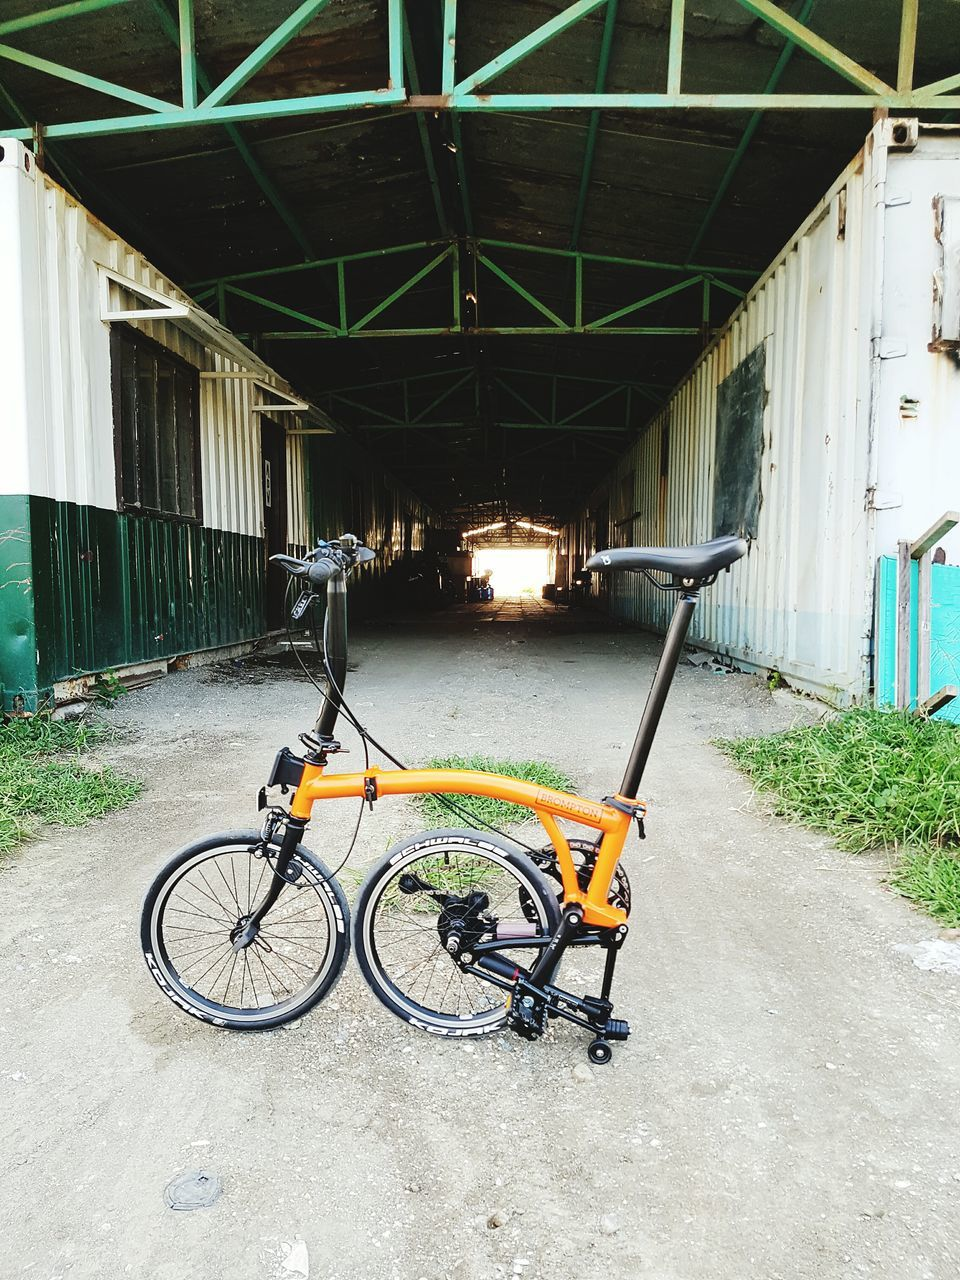 bicycle, transportation, mode of transport, built structure, architecture, land vehicle, stationary, parking, no people, day, bicycle rack, outdoors